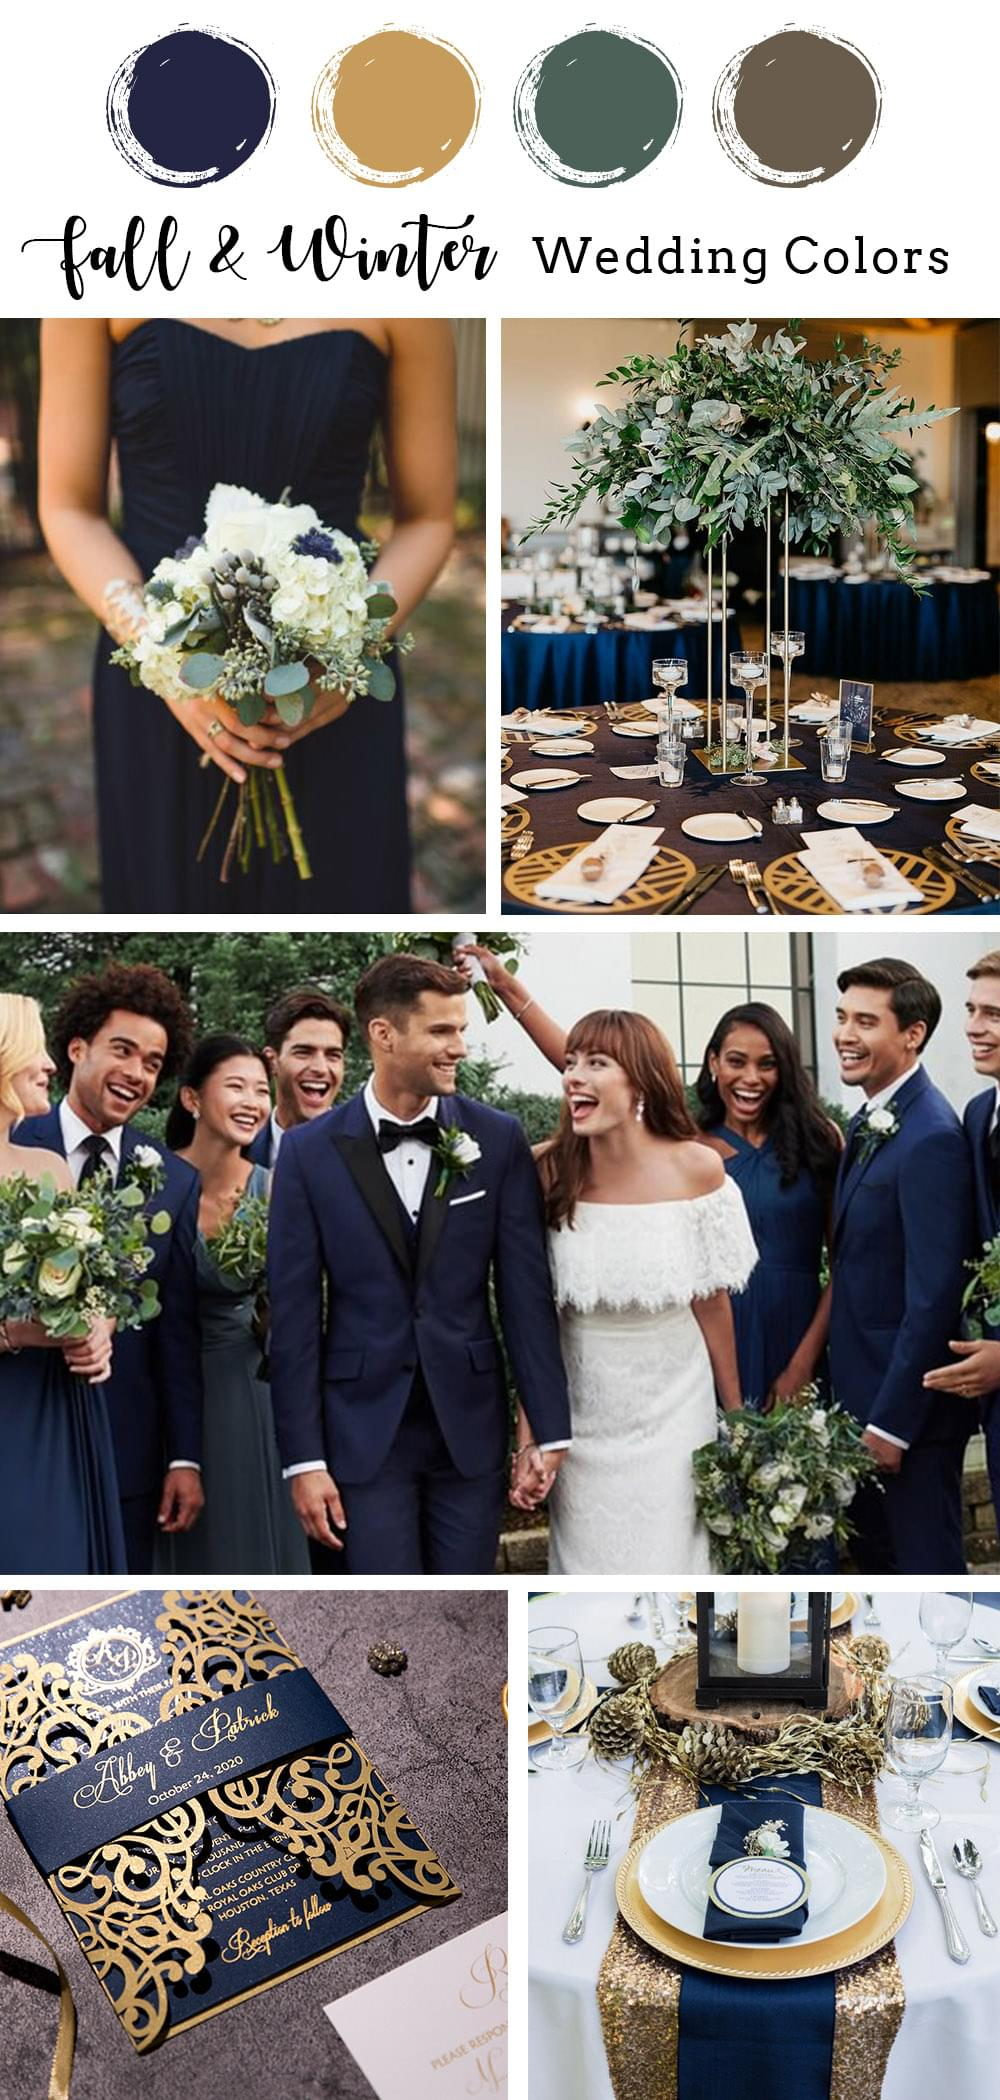 classic navy blue and gold fall and winter wedding color ideas